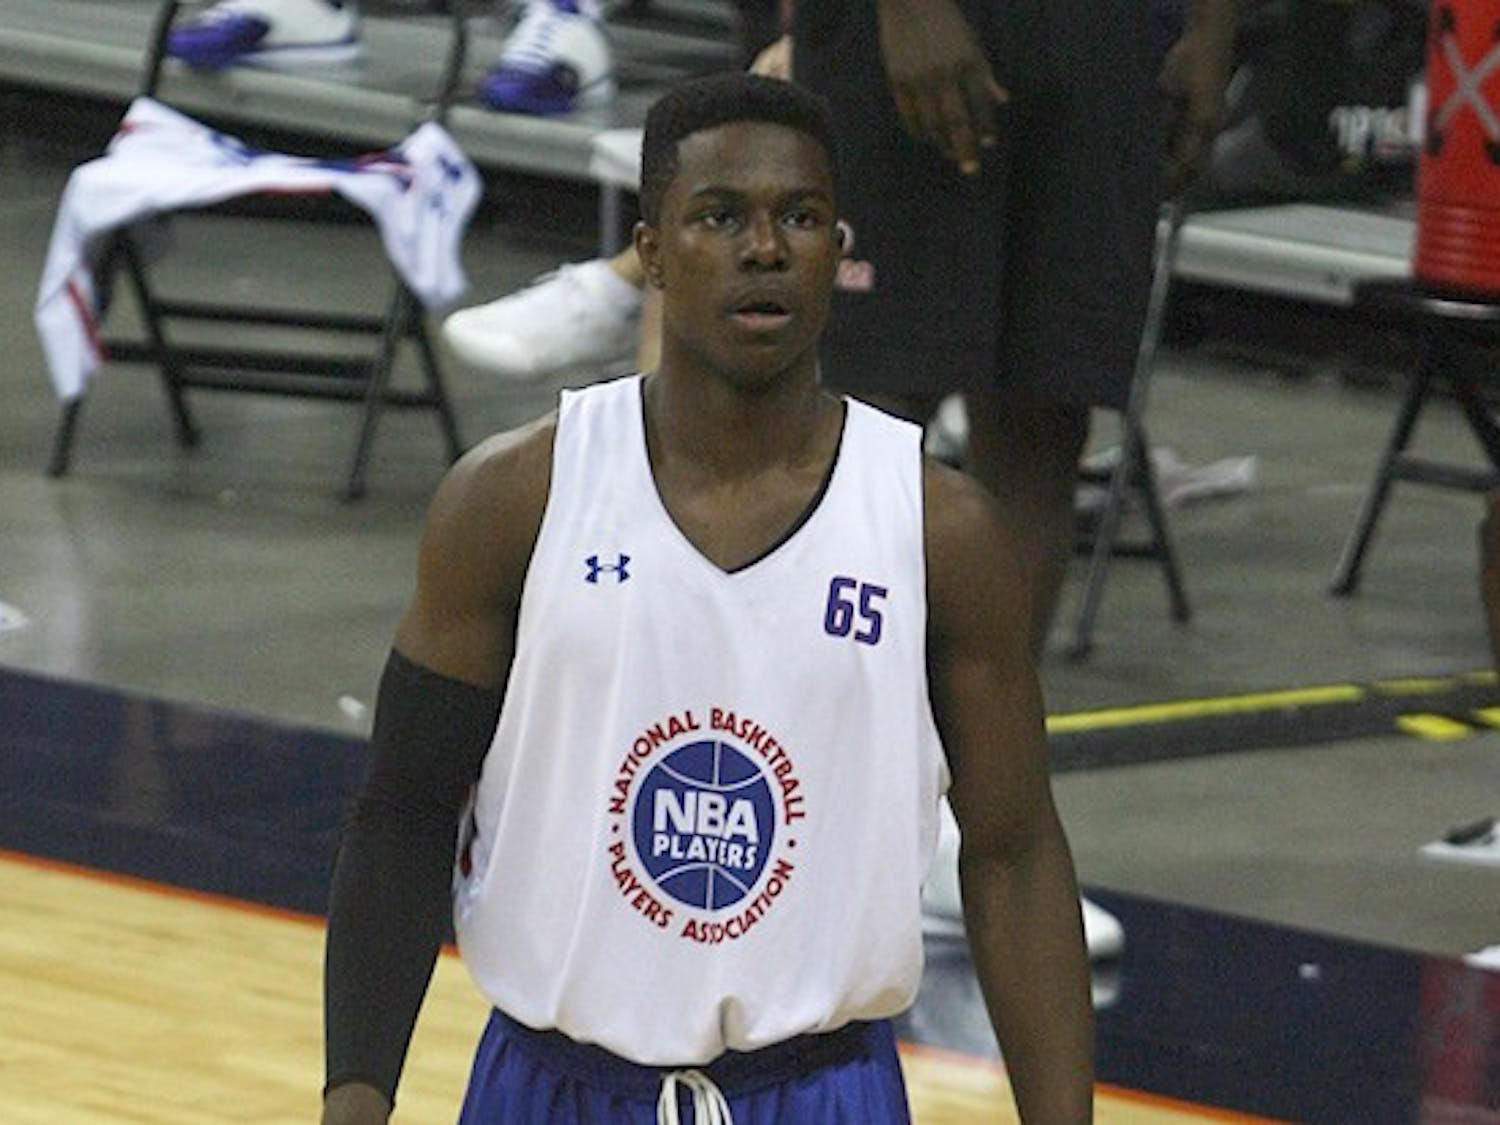 After an in-home visit from Duke basketball head coach Mike Krzyzewski, Semi Ojeleye committed to the Blue Devils on Sunday.